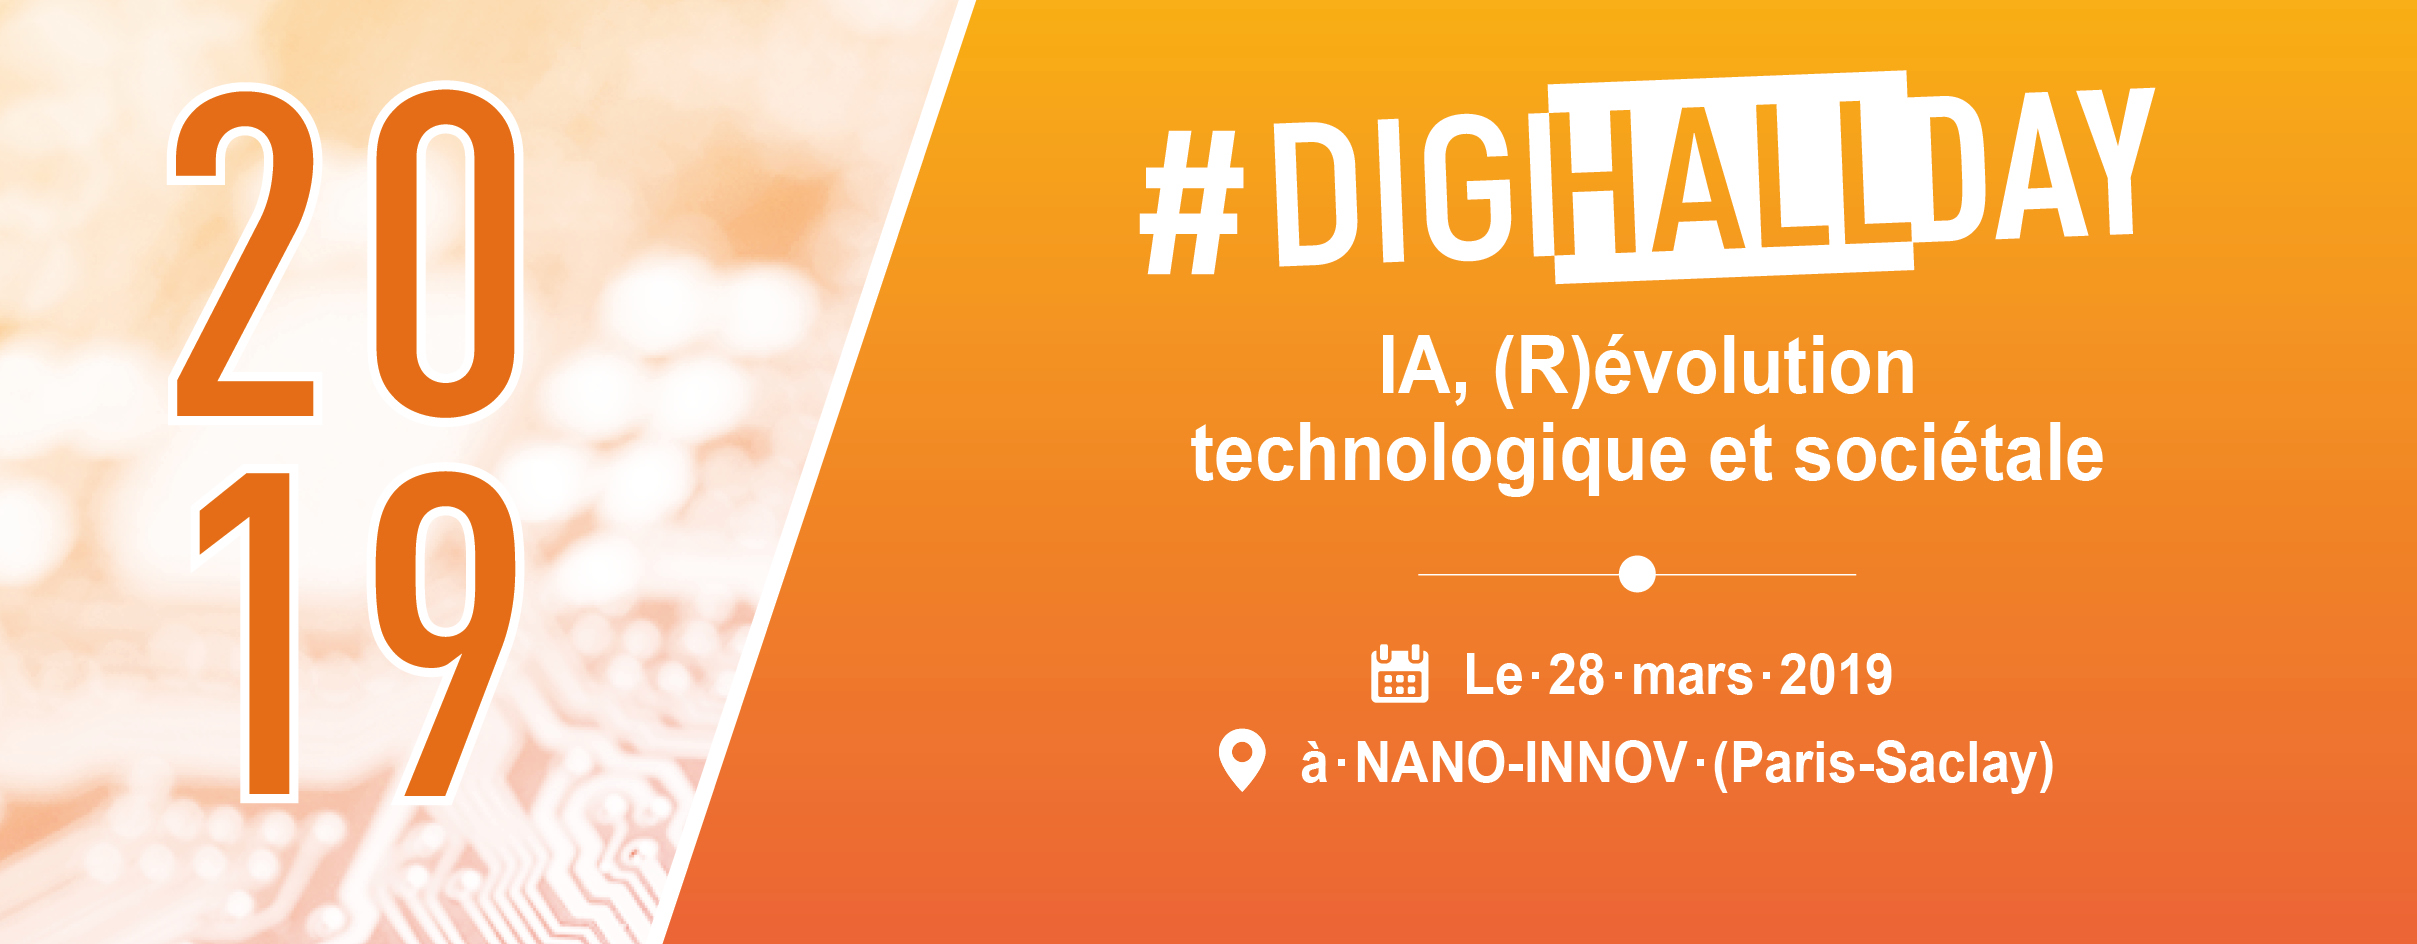 DigiHall Day 2019: IA, a technological and societal (r)evolution